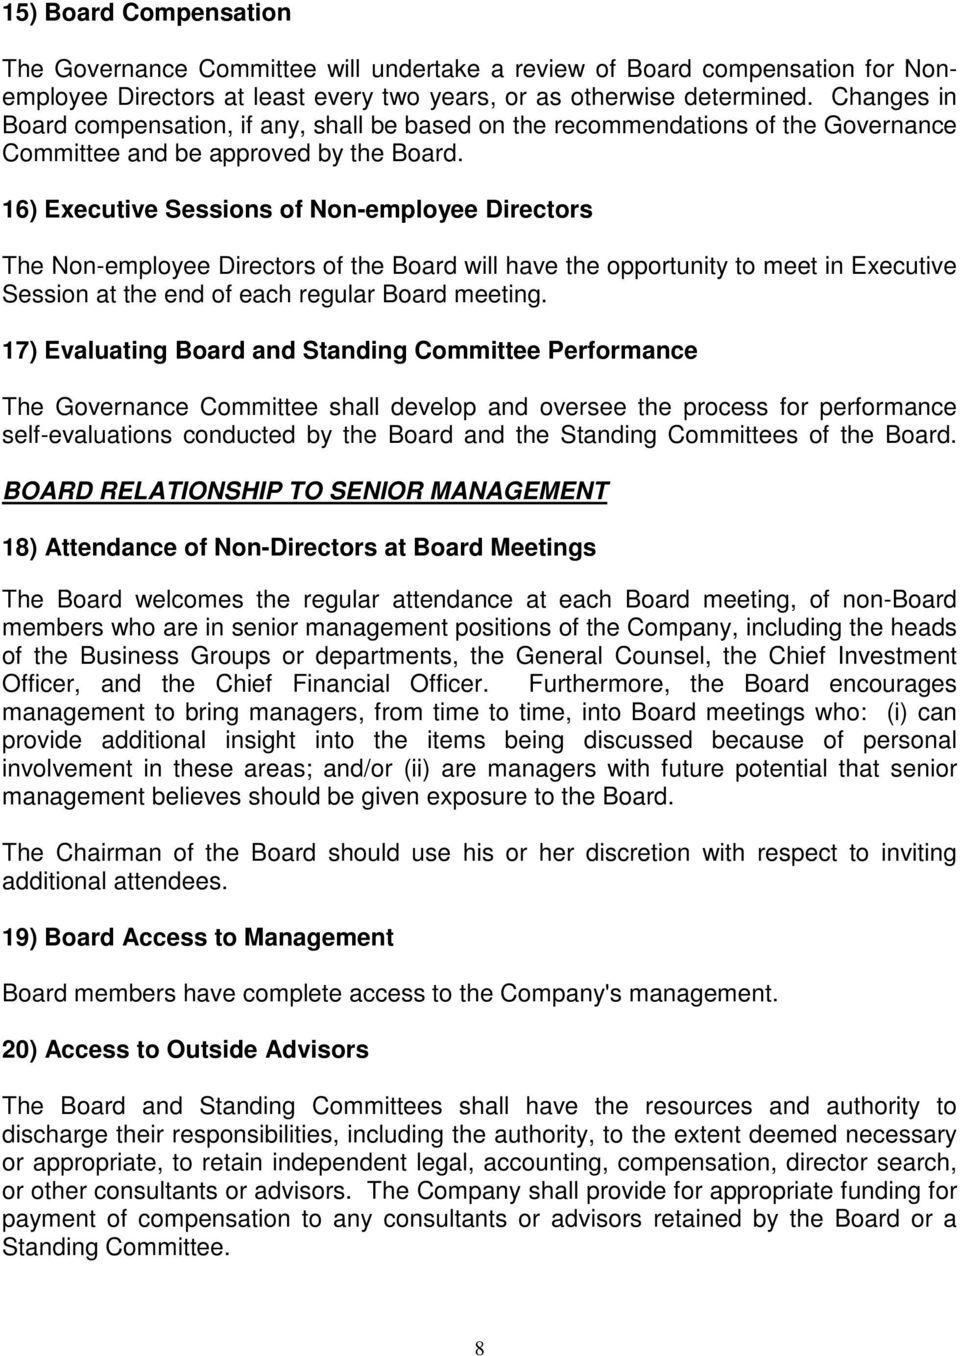 16) Executive Sessions of Non-employee Directors The Non-employee Directors of the Board will have the opportunity to meet in Executive Session at the end of each regular Board meeting.